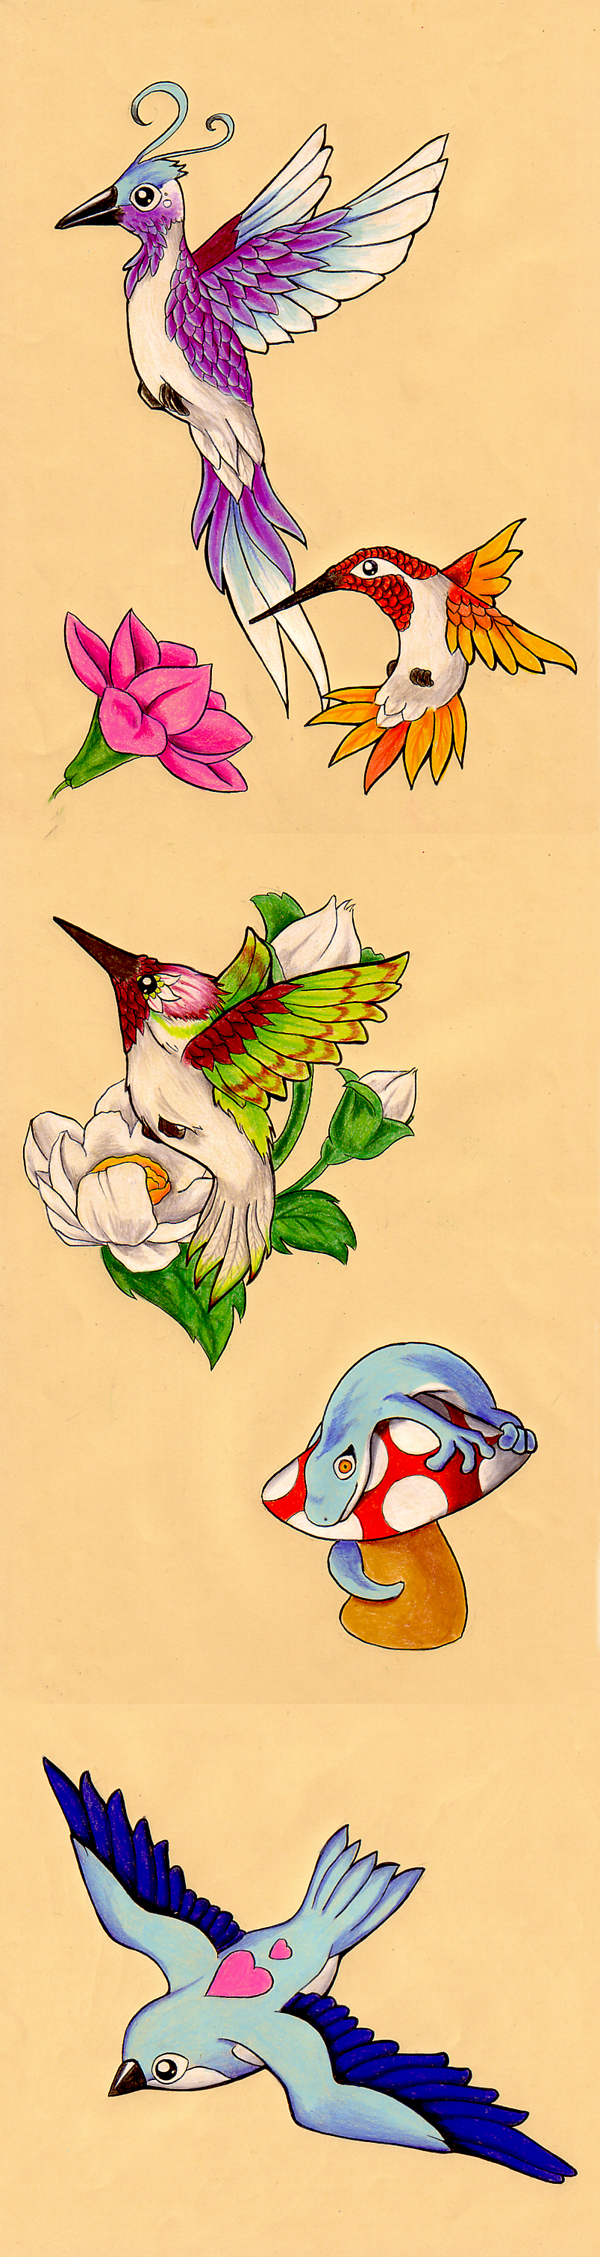 Some Birds and a Lizard by frowzivitch